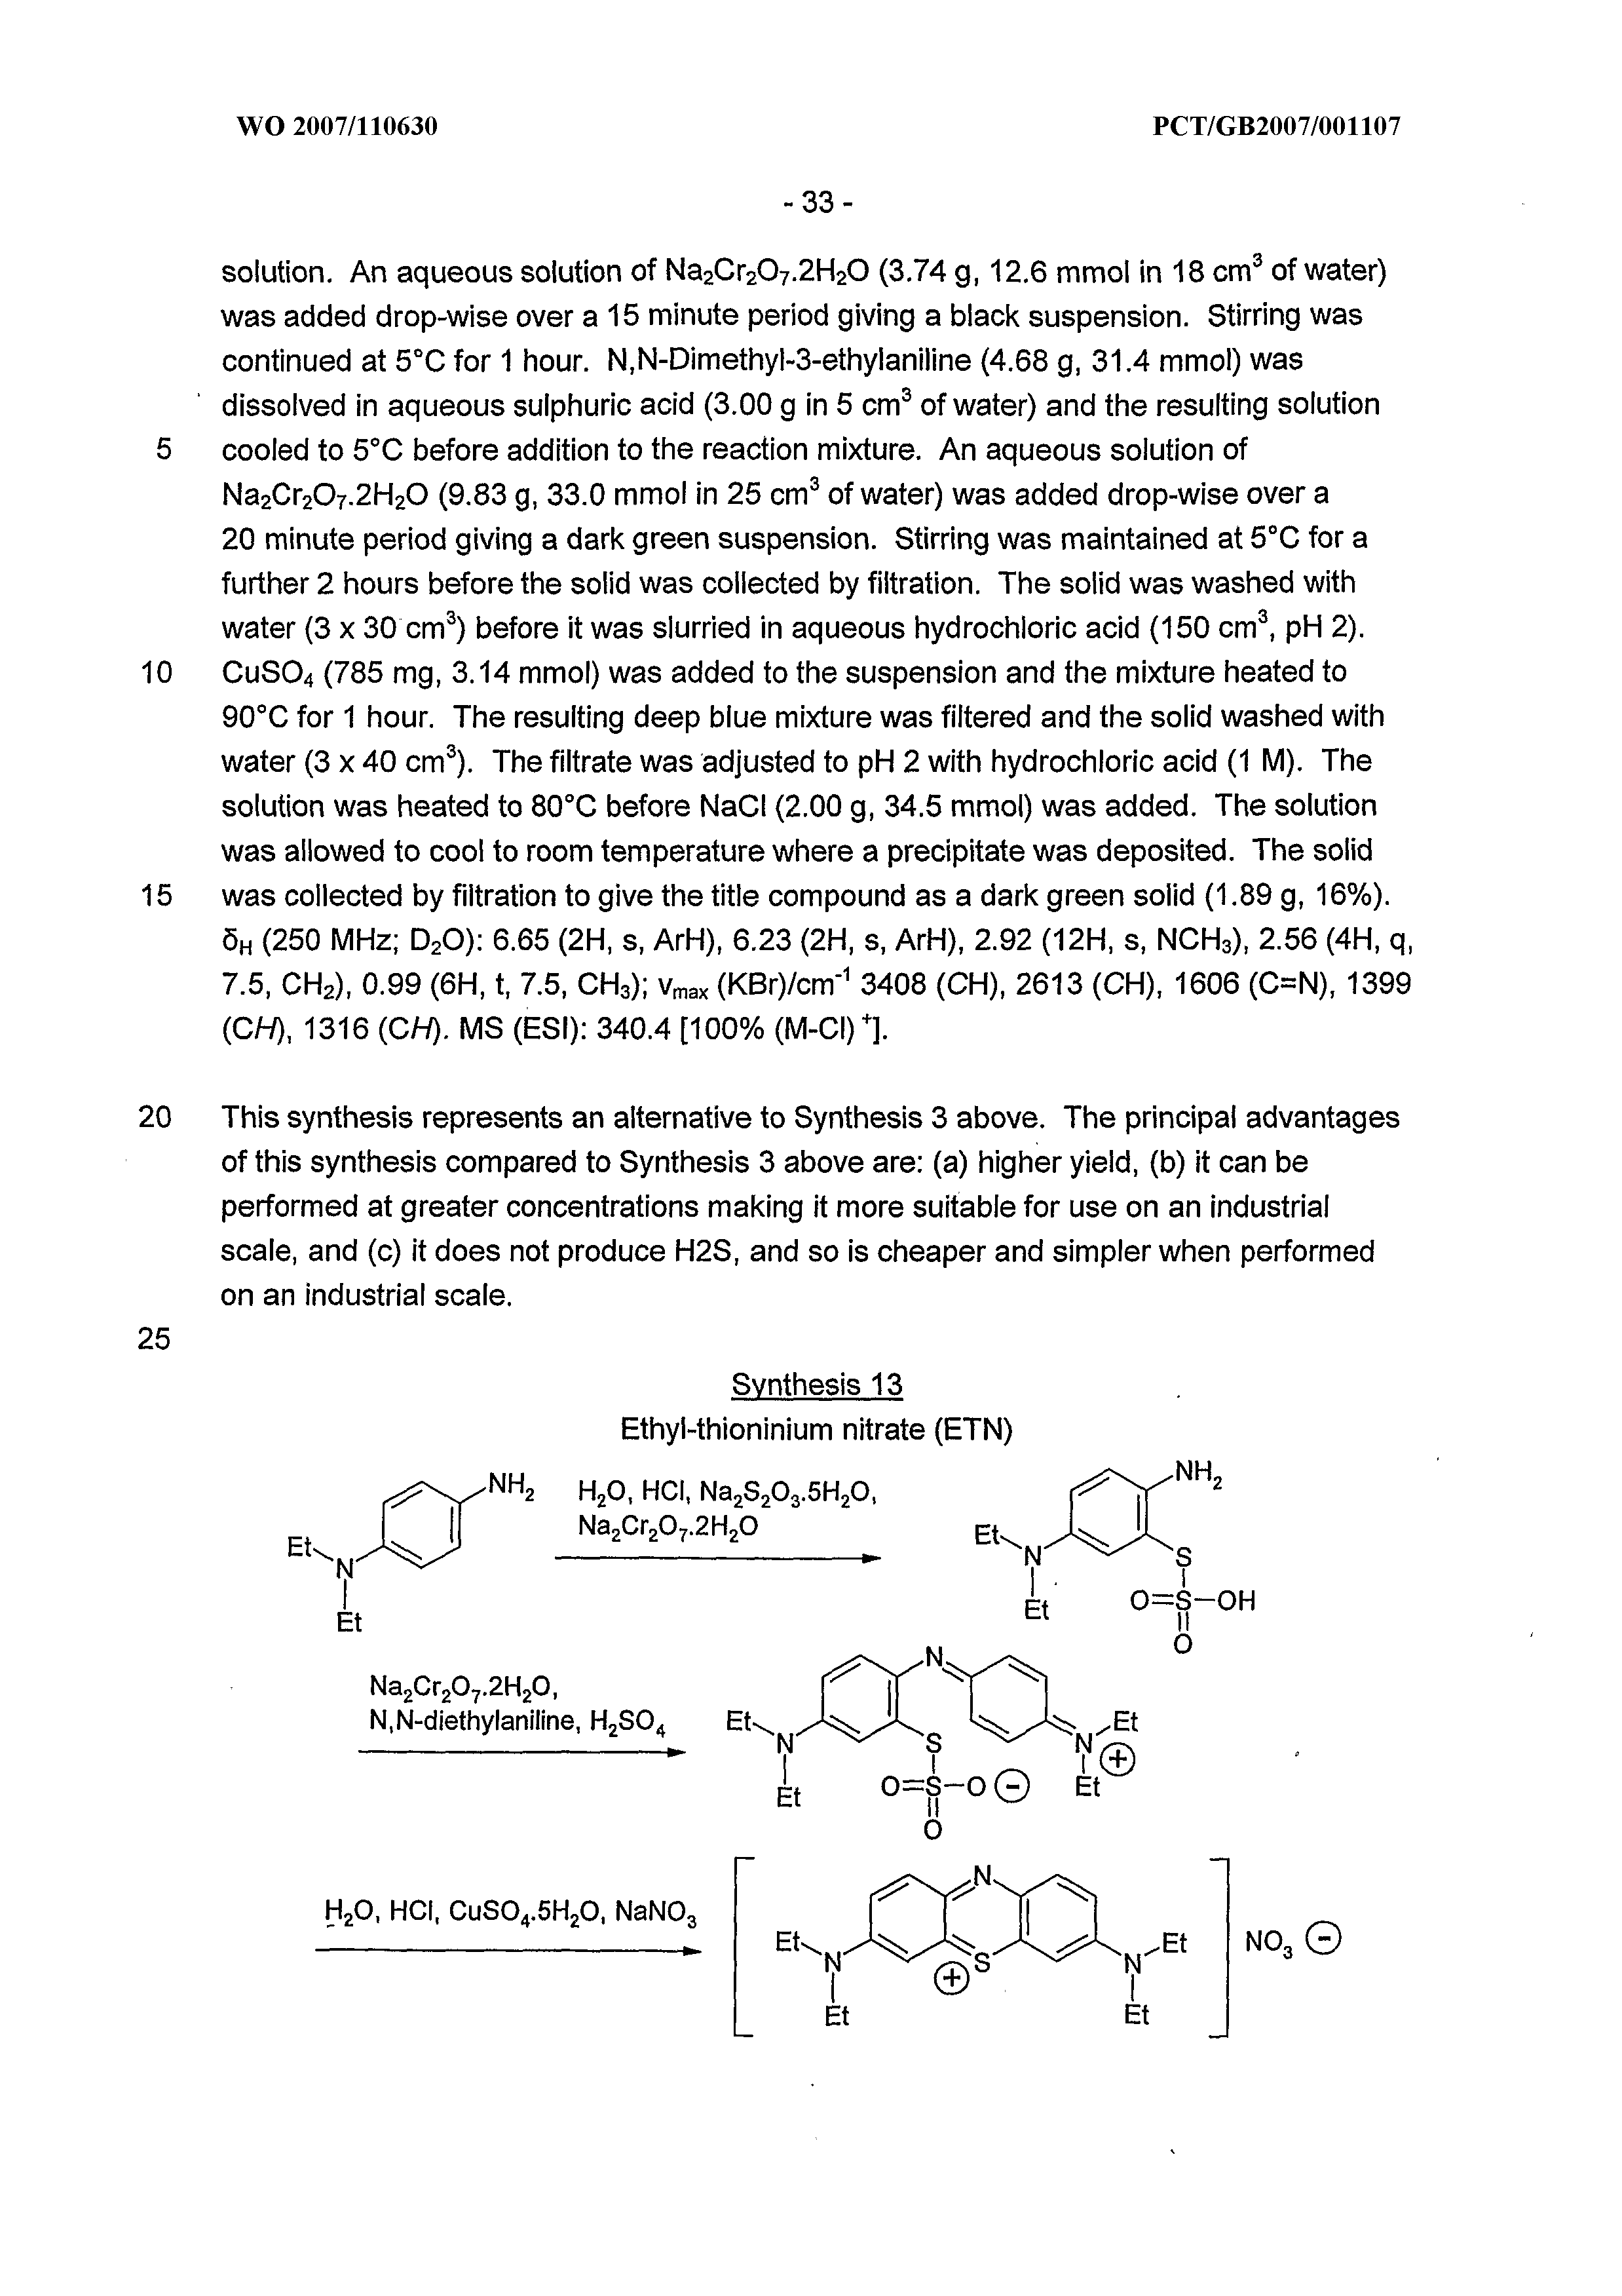 WO 2007/110630 A1 - Thioninium Compounds And Their Use - The Lens